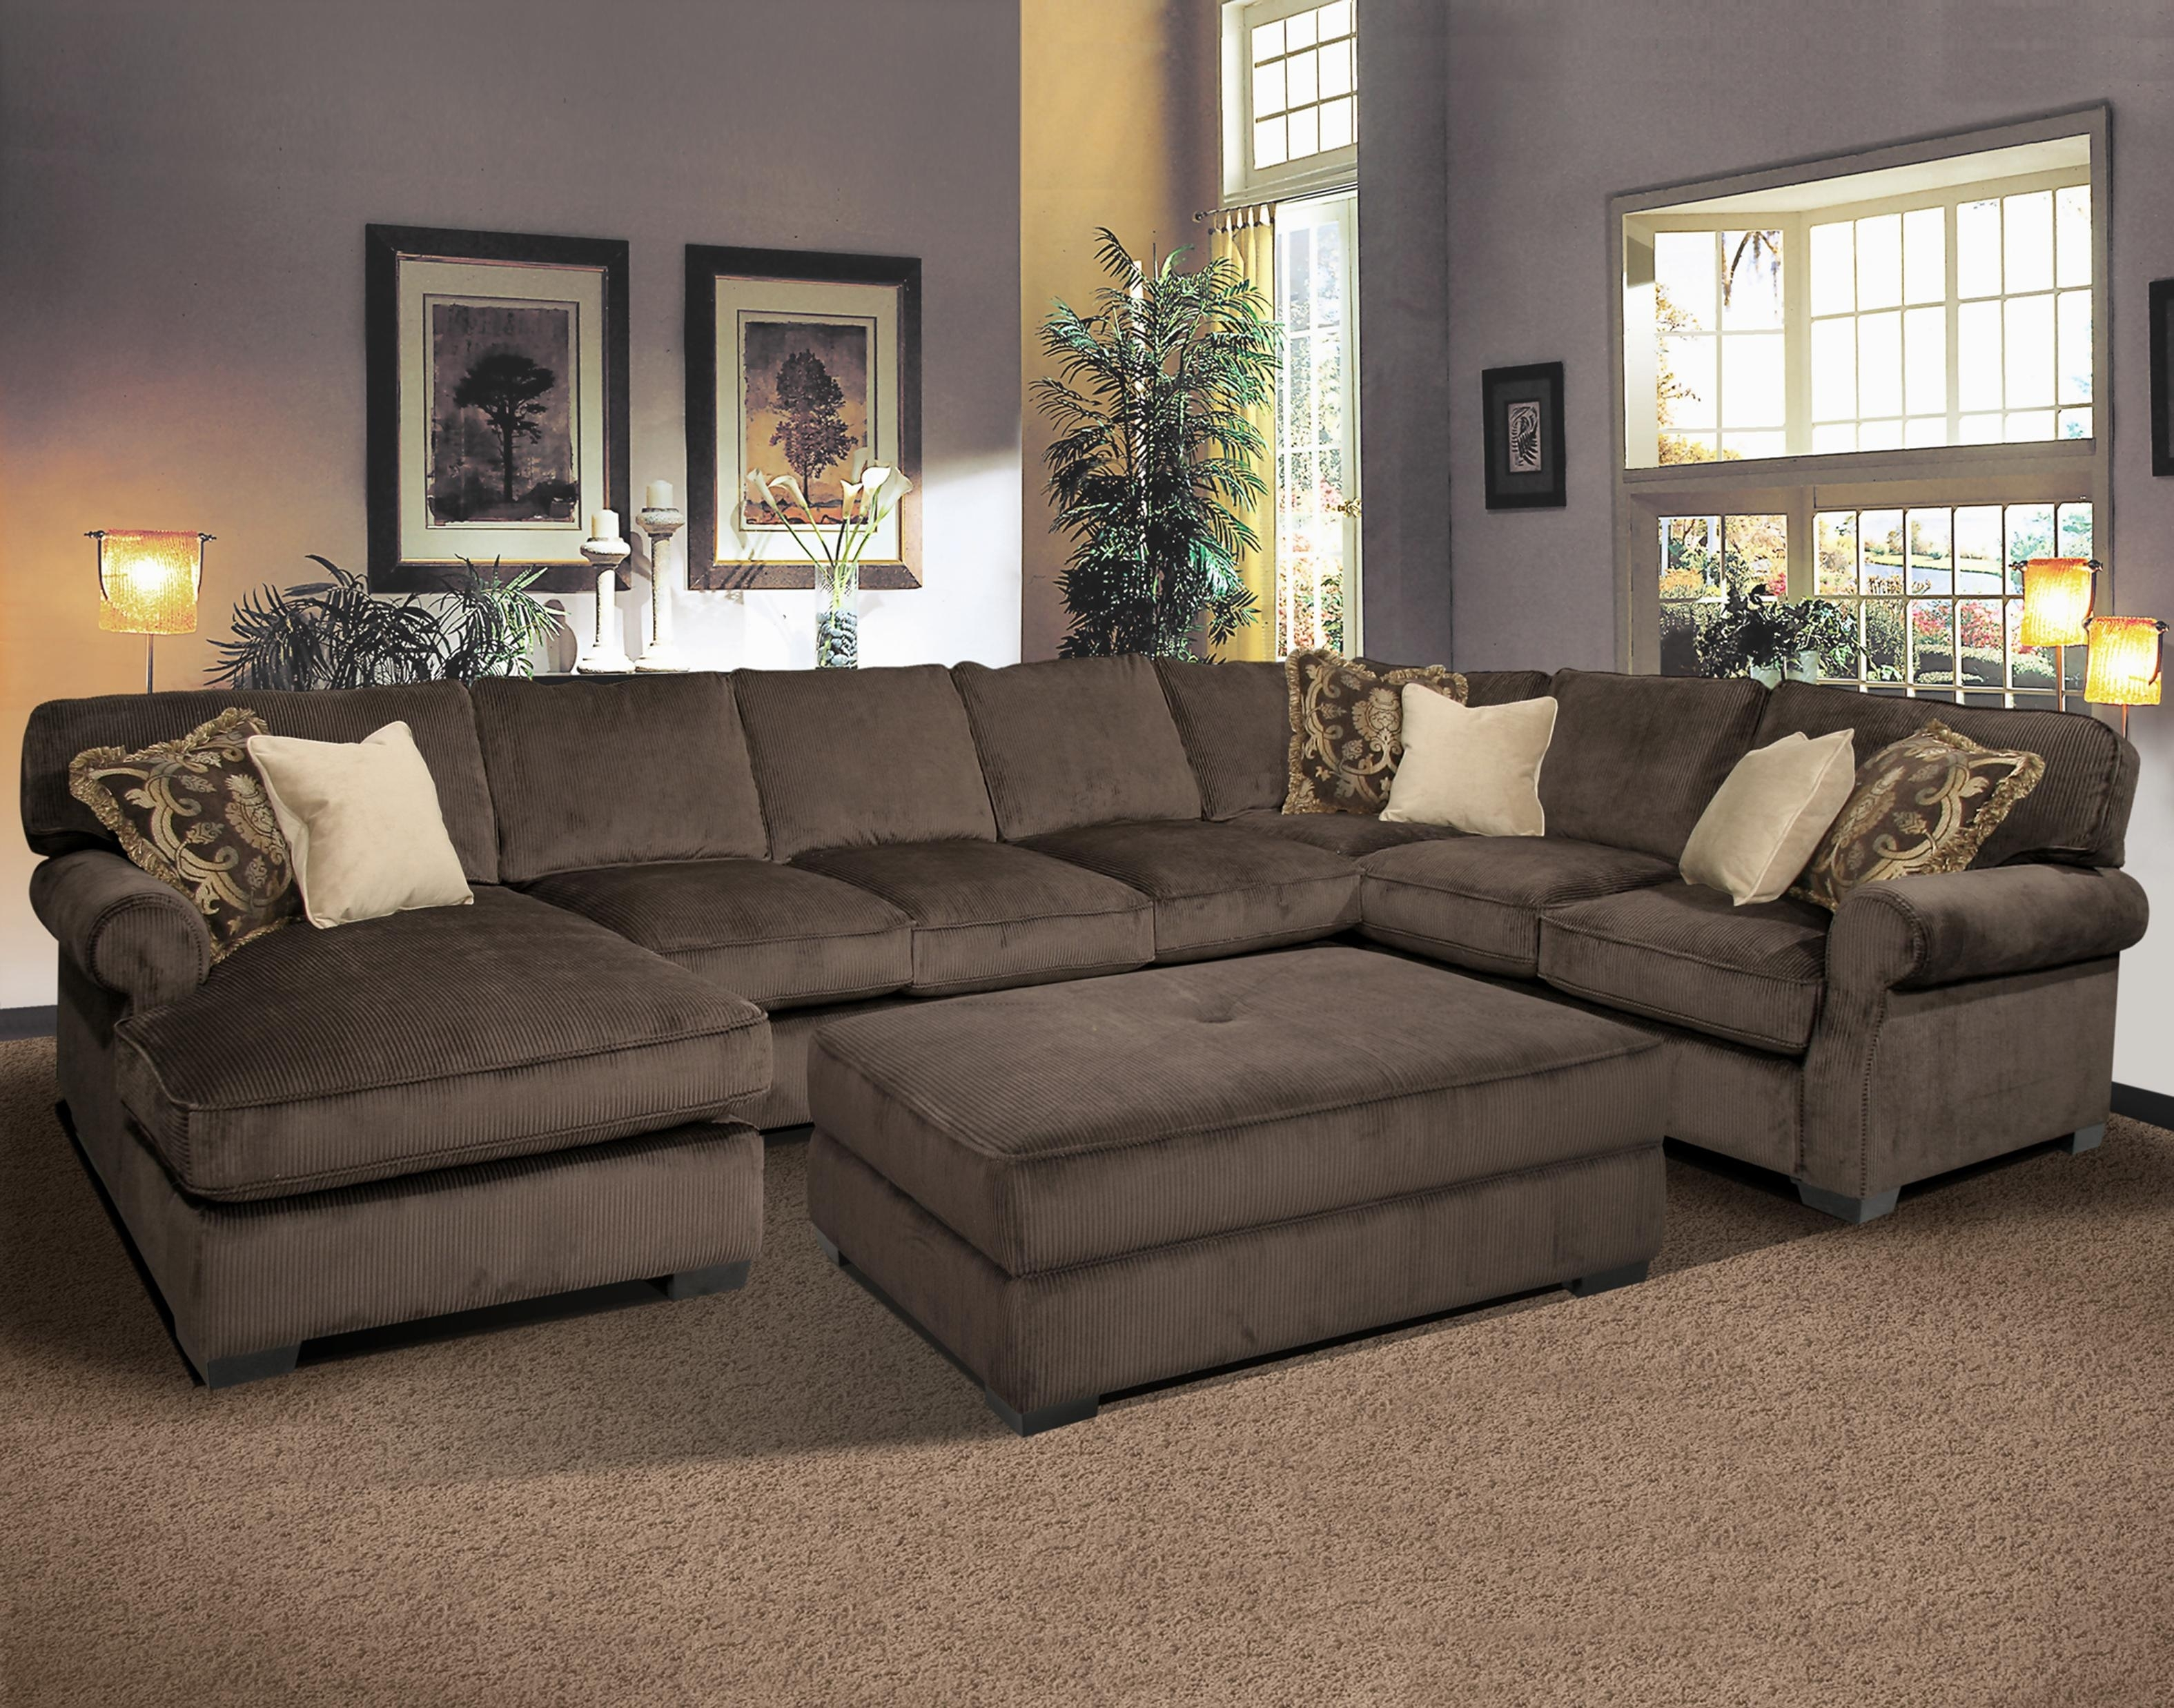 Awesome Large U Shaped Sectional Sofas 26 For Your Leather Sectional Intended For Huge U Shaped Sectionals (View 15 of 15)